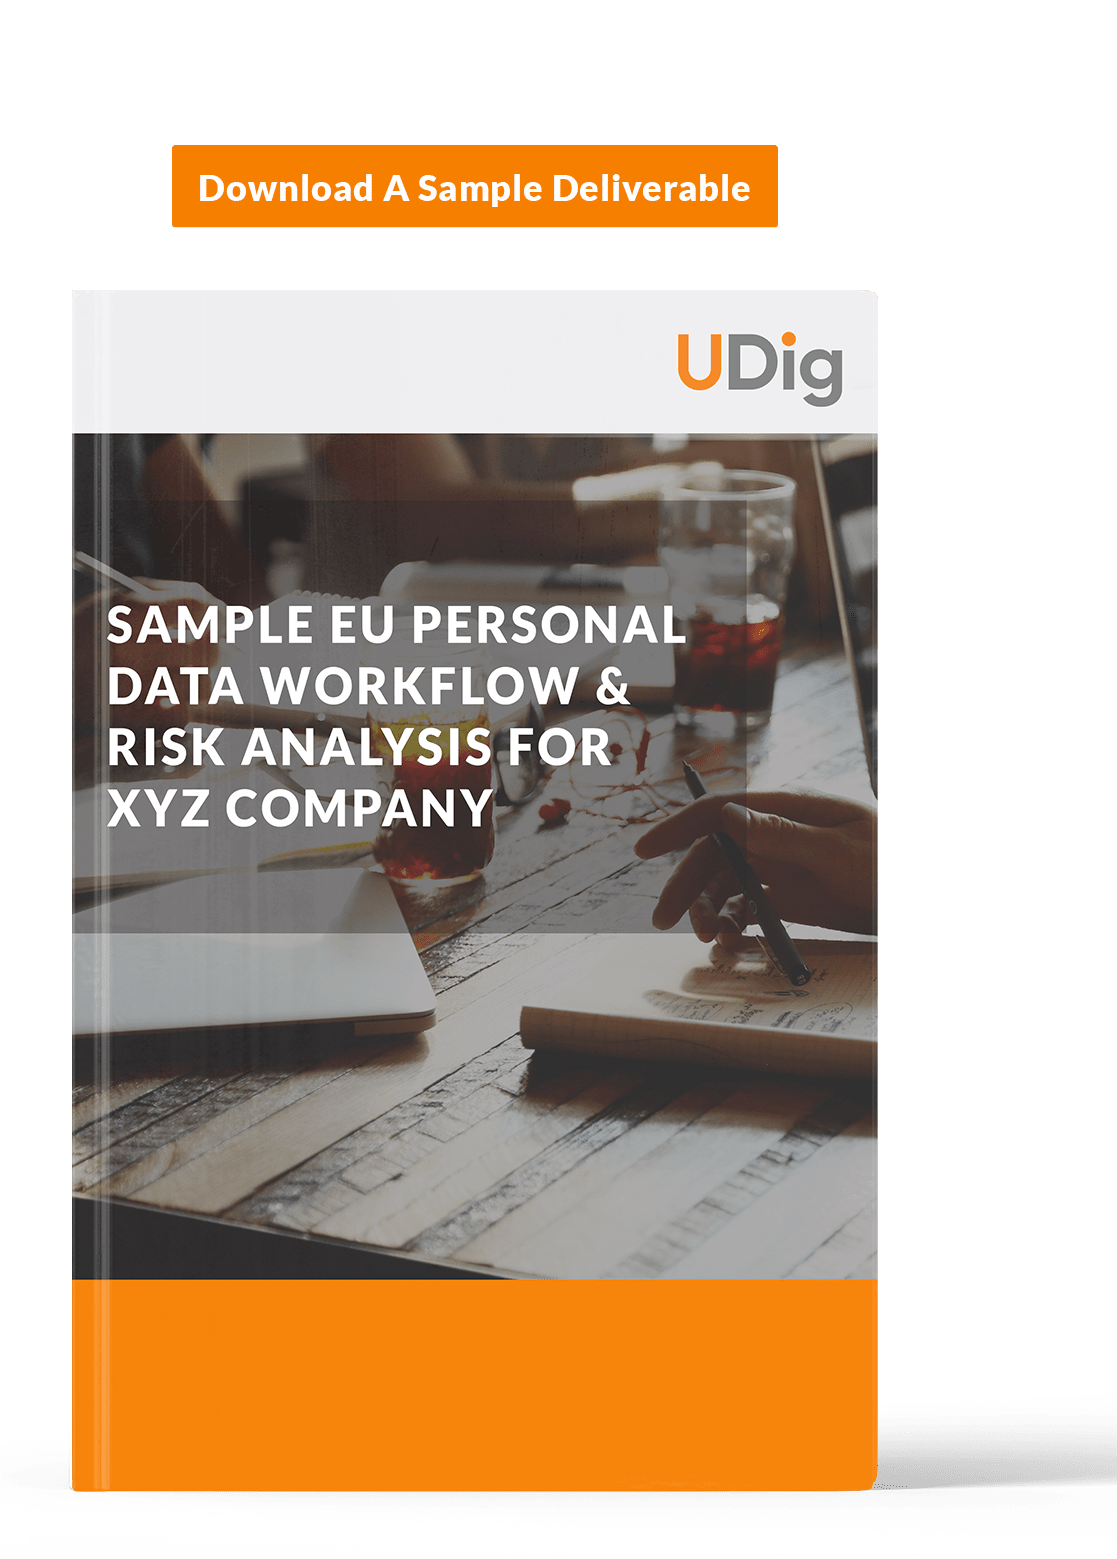 Sample GDPR Deliverable